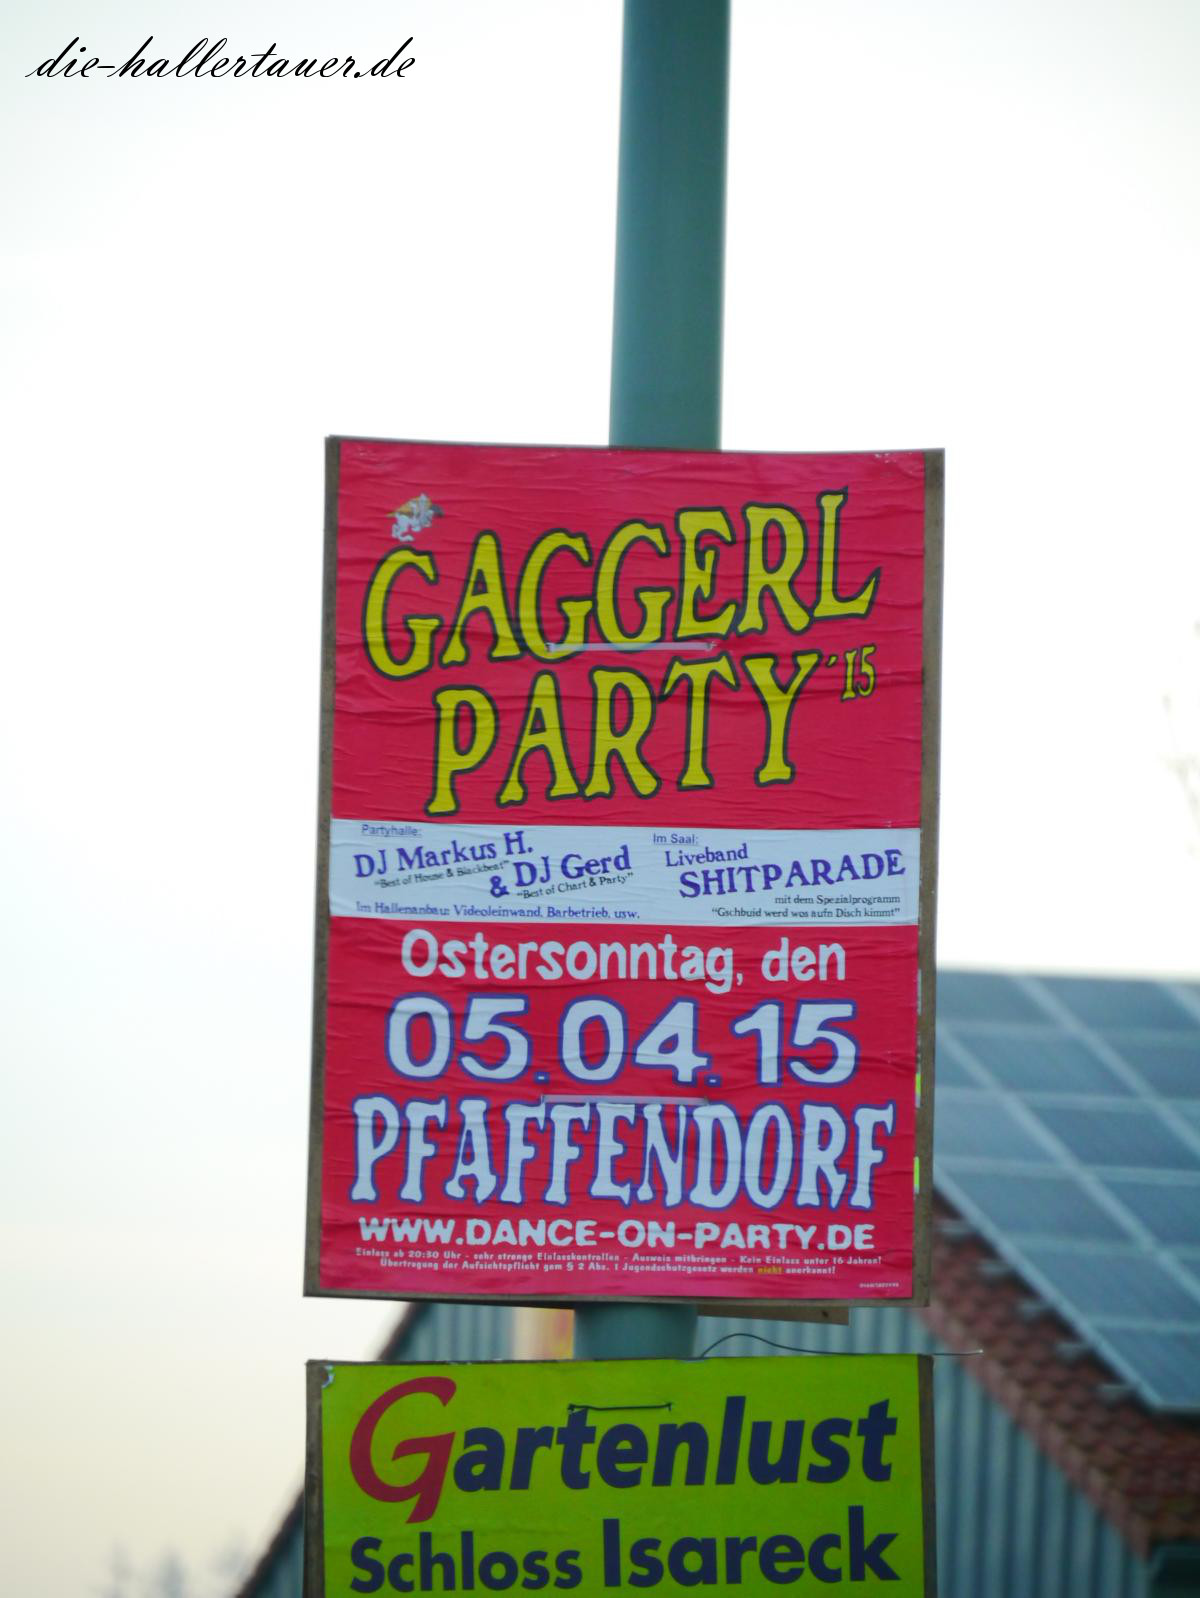 Gaggerl Party